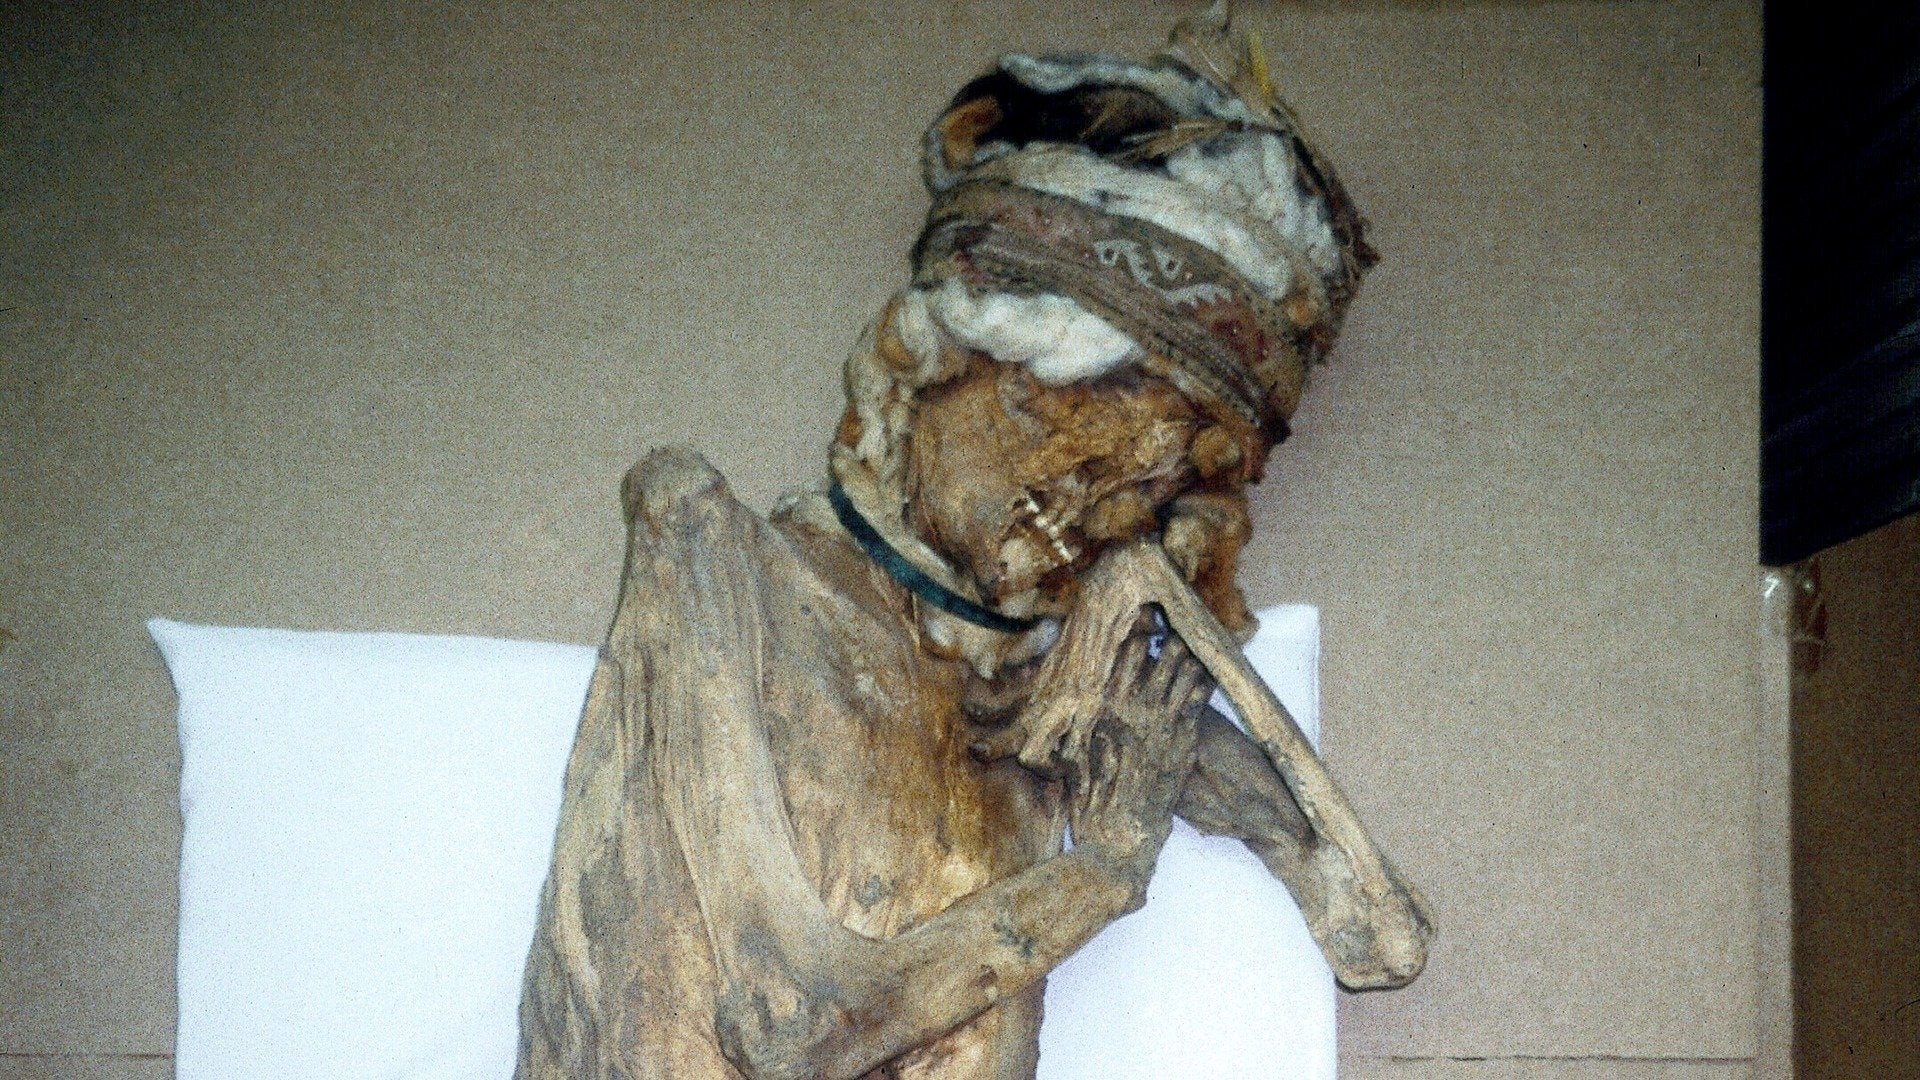 The Mystery of the Alaskan Mummies